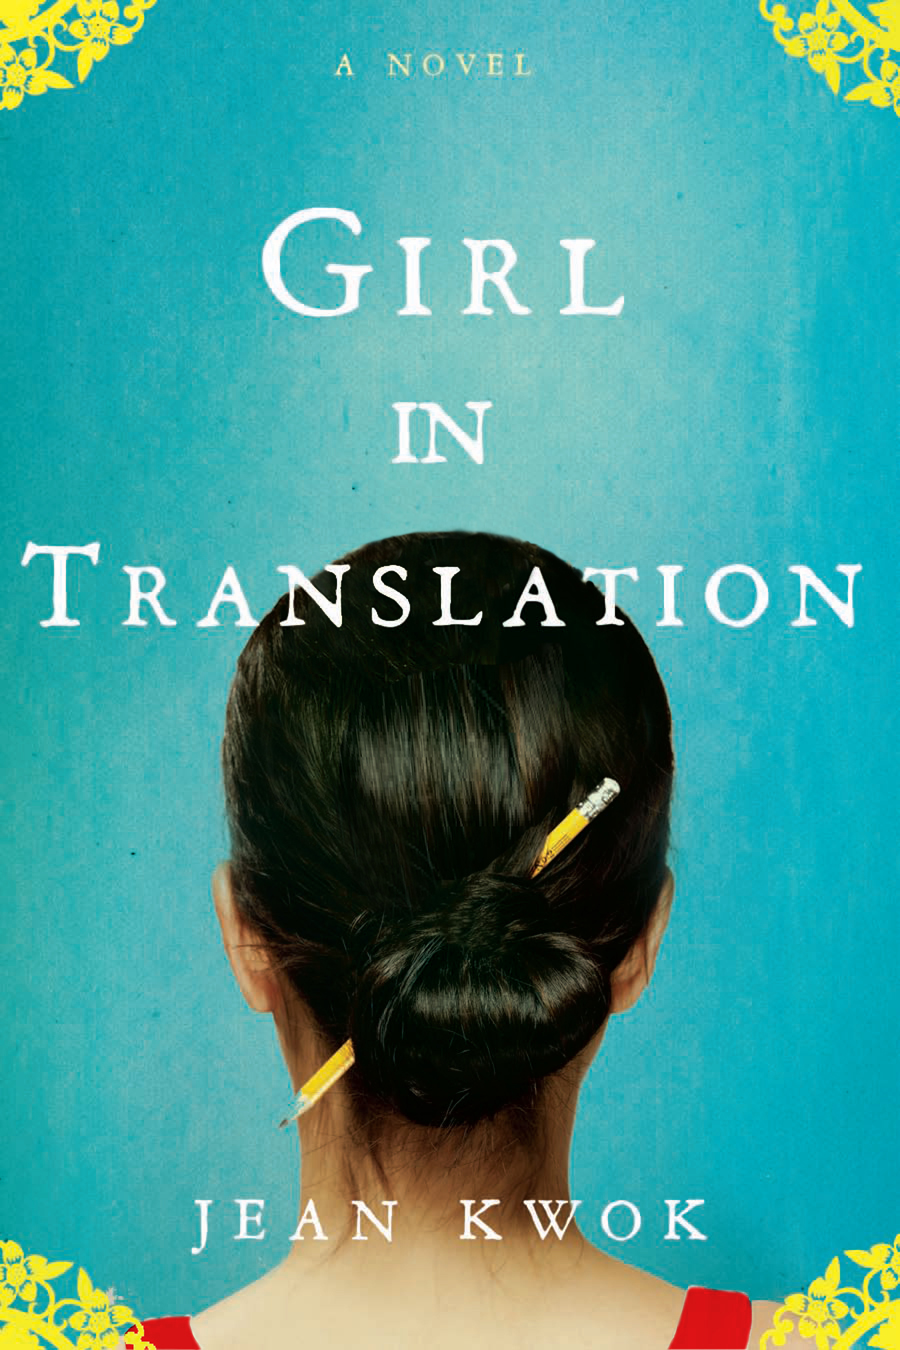 Dear Thursday: GIRL IN TRANSLATION by Jean Kwok [Book 29 of 2010]